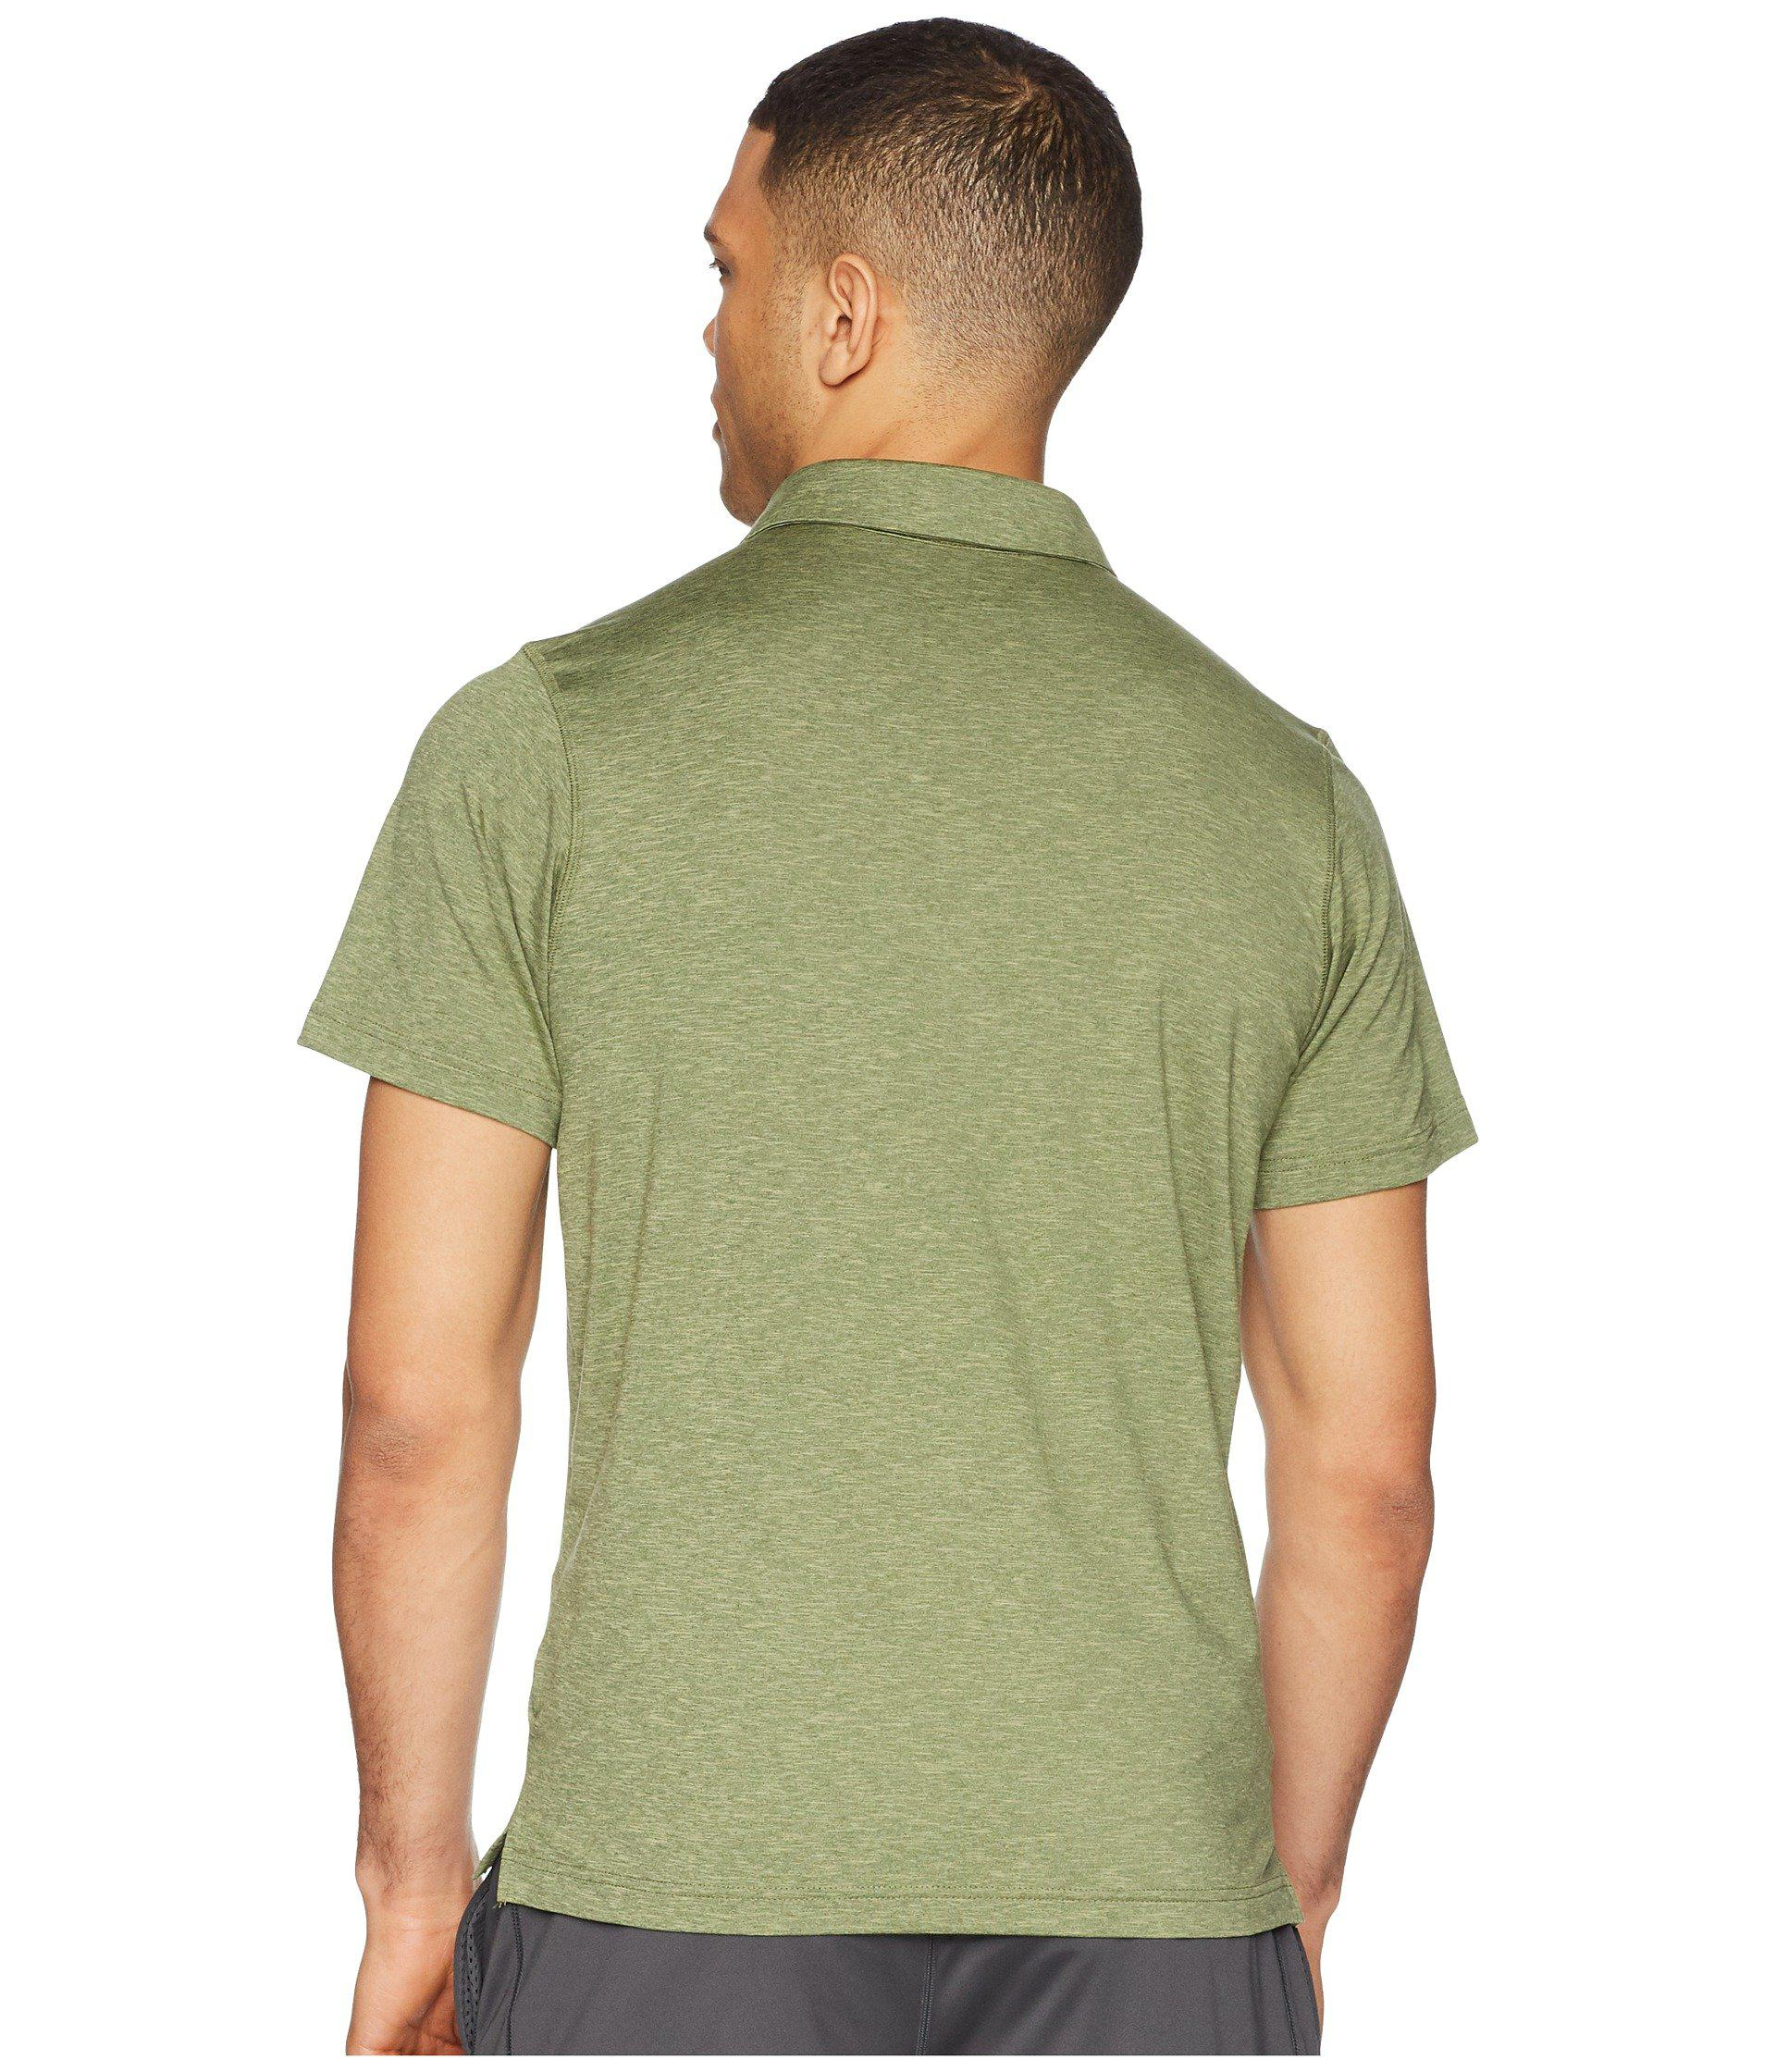 060a1efc700 Columbia Tech Trail Polo in Green for Men - Lyst